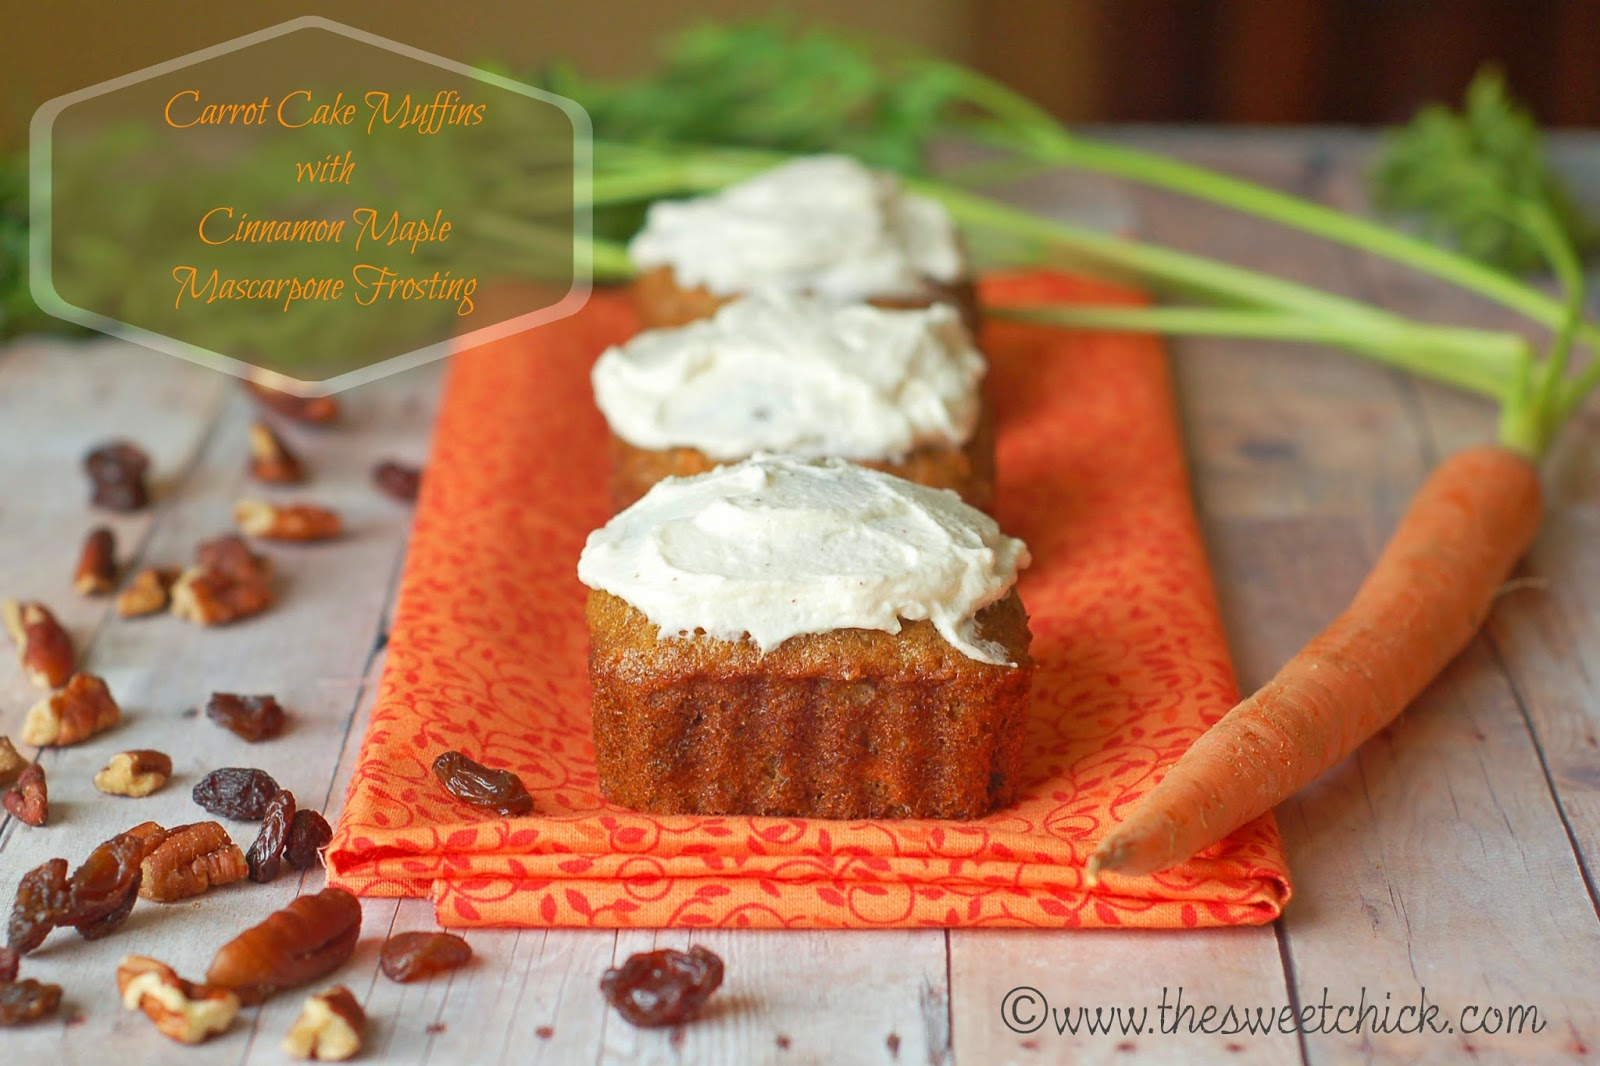 Carrot Cake Muffins by The Sweet Chick